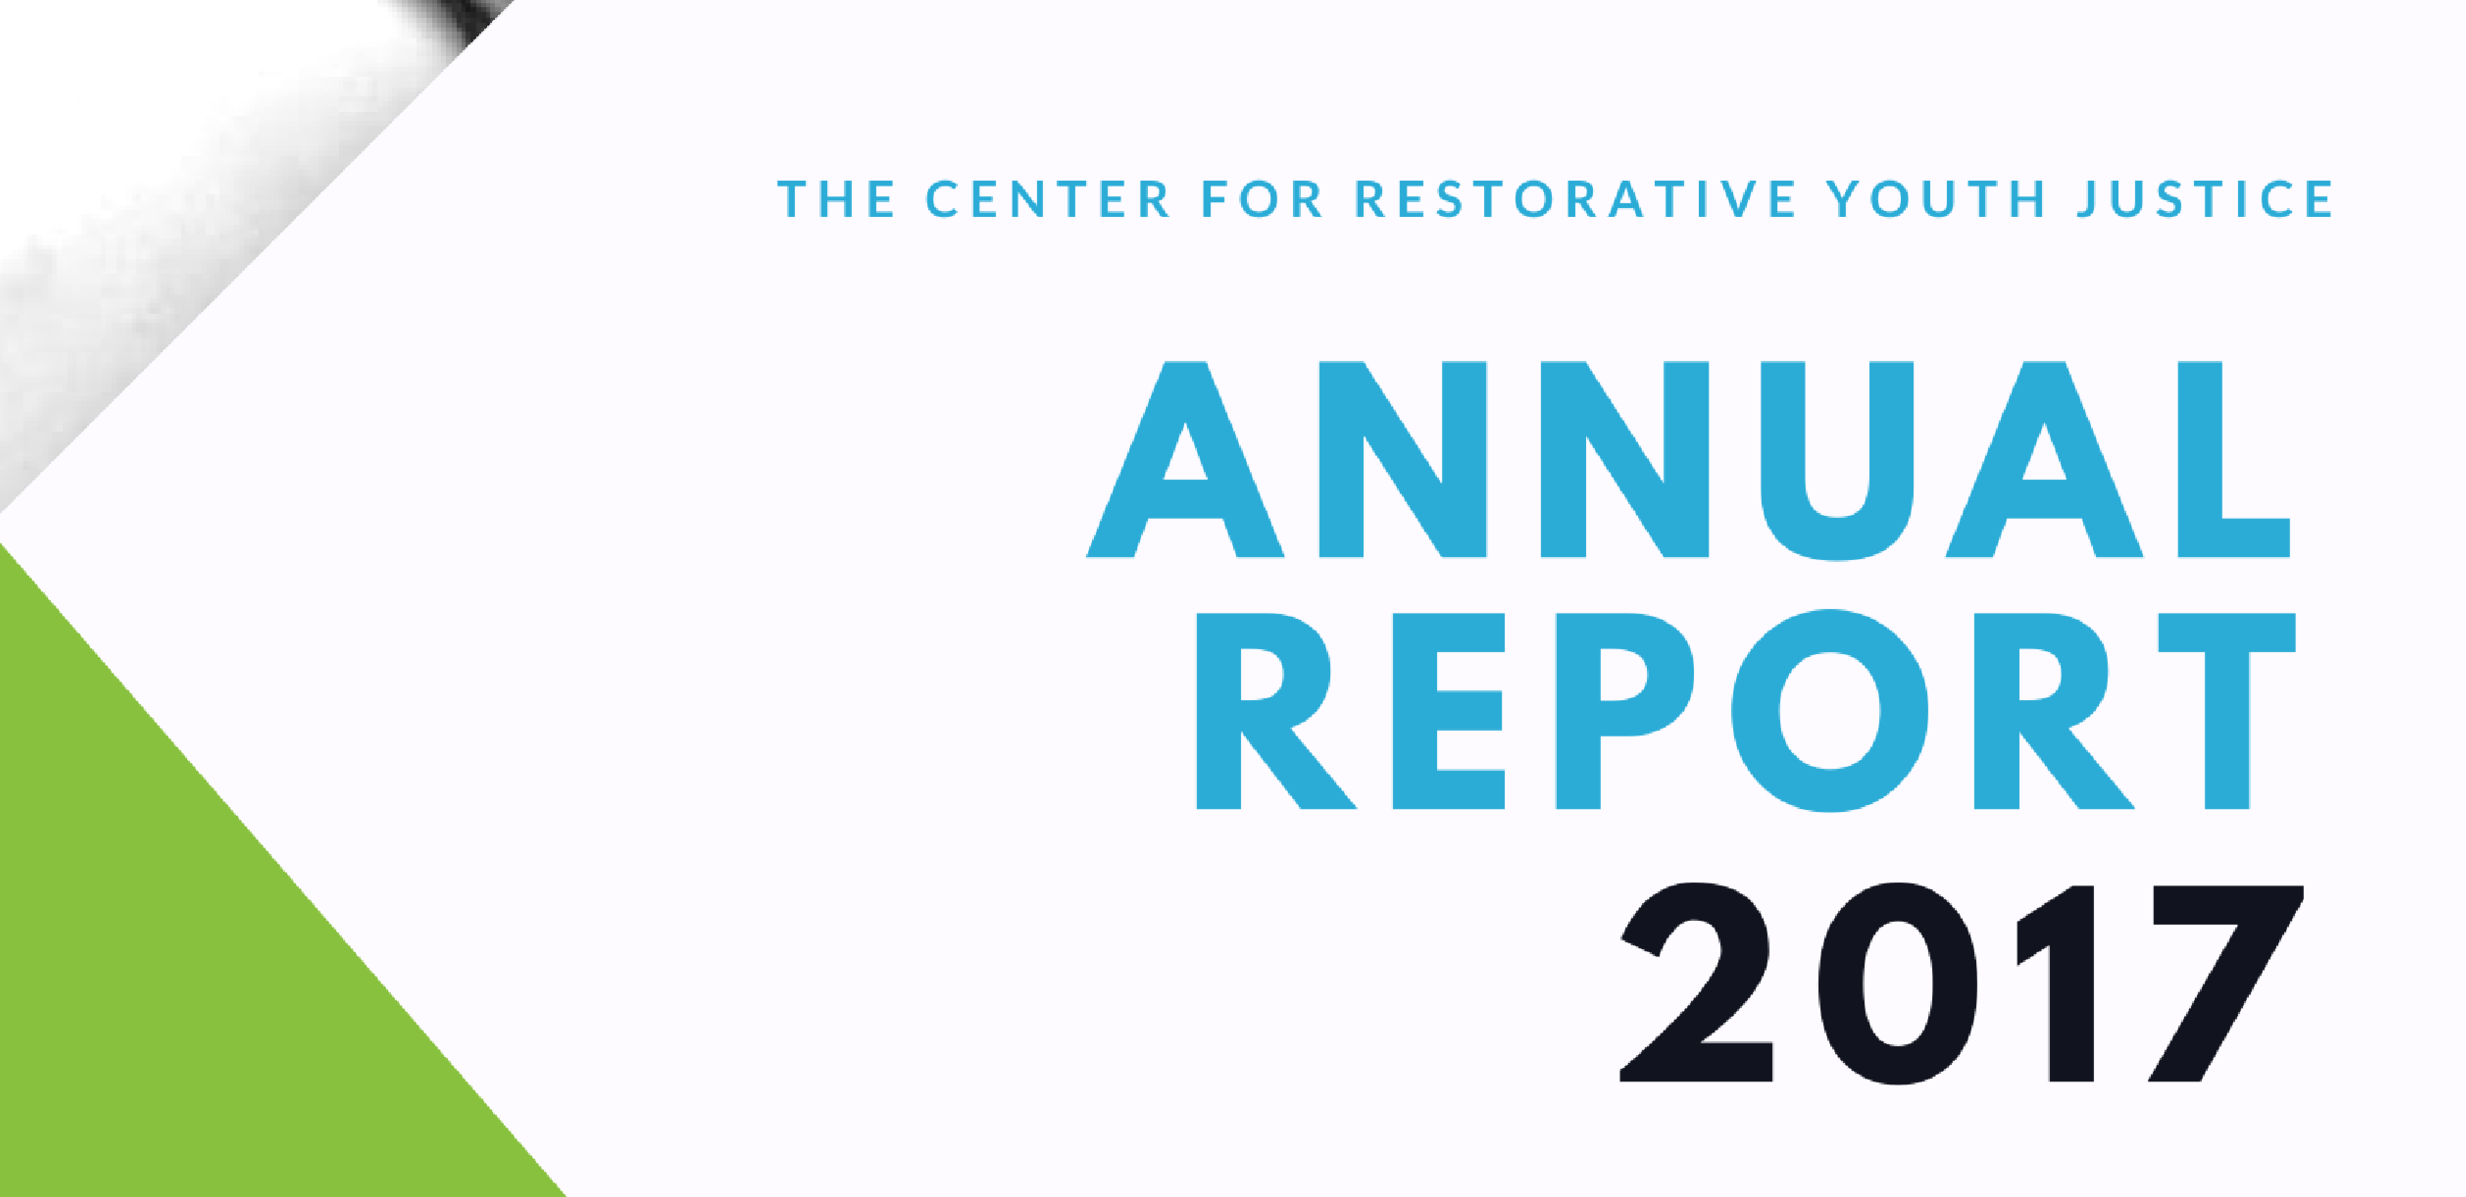 - SCROLL DOWN to read the 2017 annual report!CRYJ's WEBSITE IS UNDER CONSTRUCTION... COME BACK SOON FOR UPDATED CONTENT!